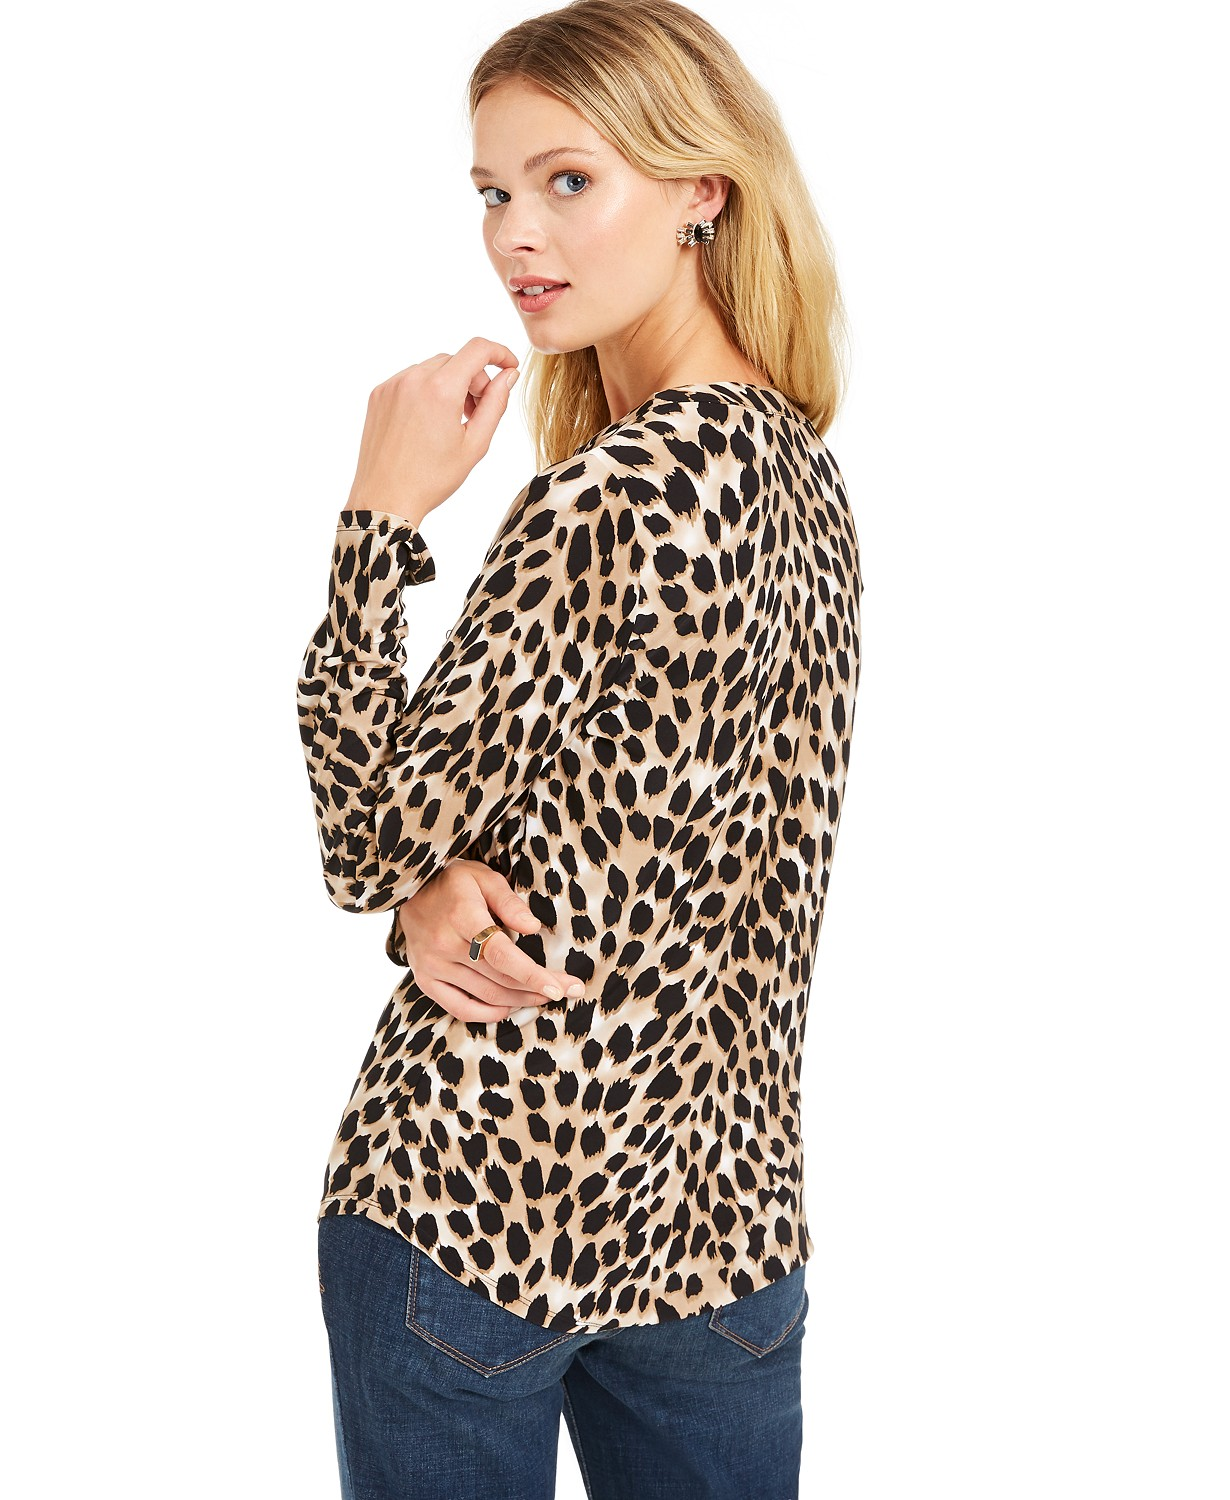 Leopard print top at Macys